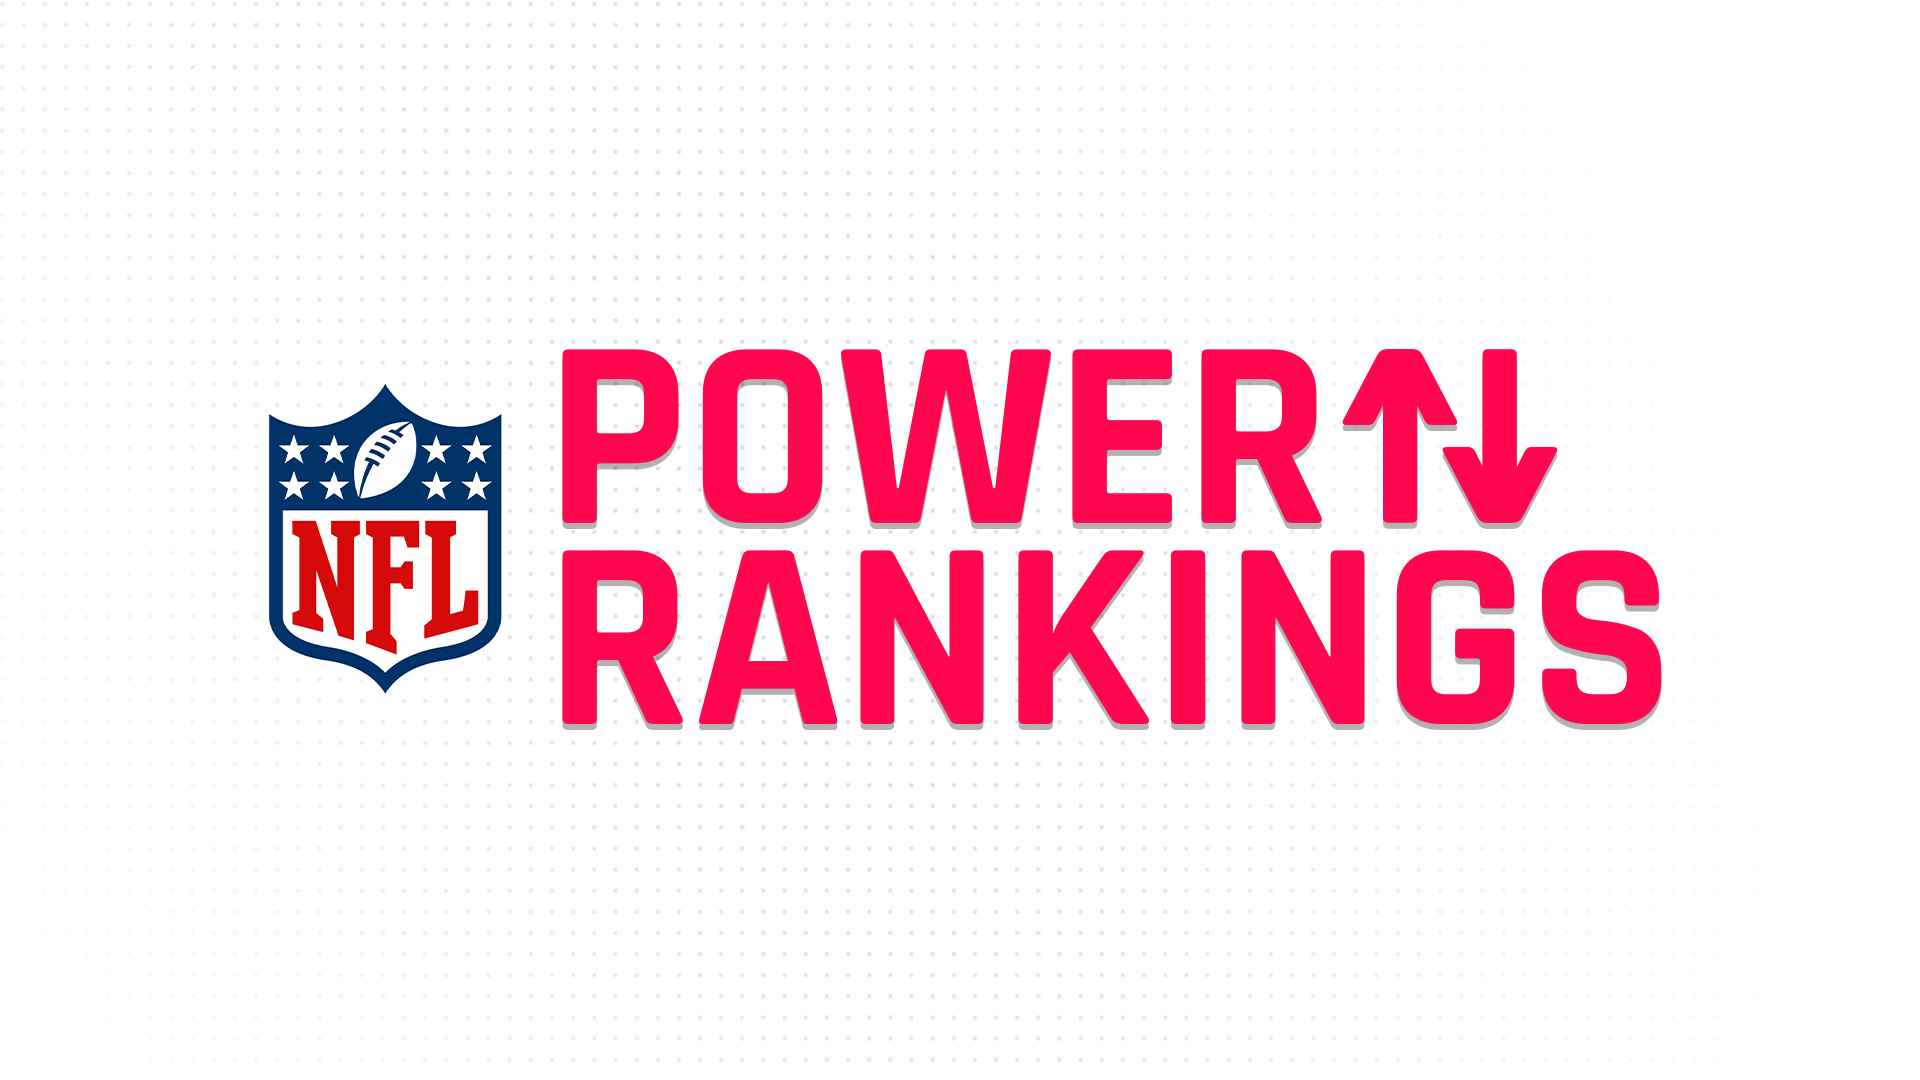 NFL power rankings: Seahawks overtake Chiefs with Steelers close behind; 49ers, Cowboys fall for Week 6